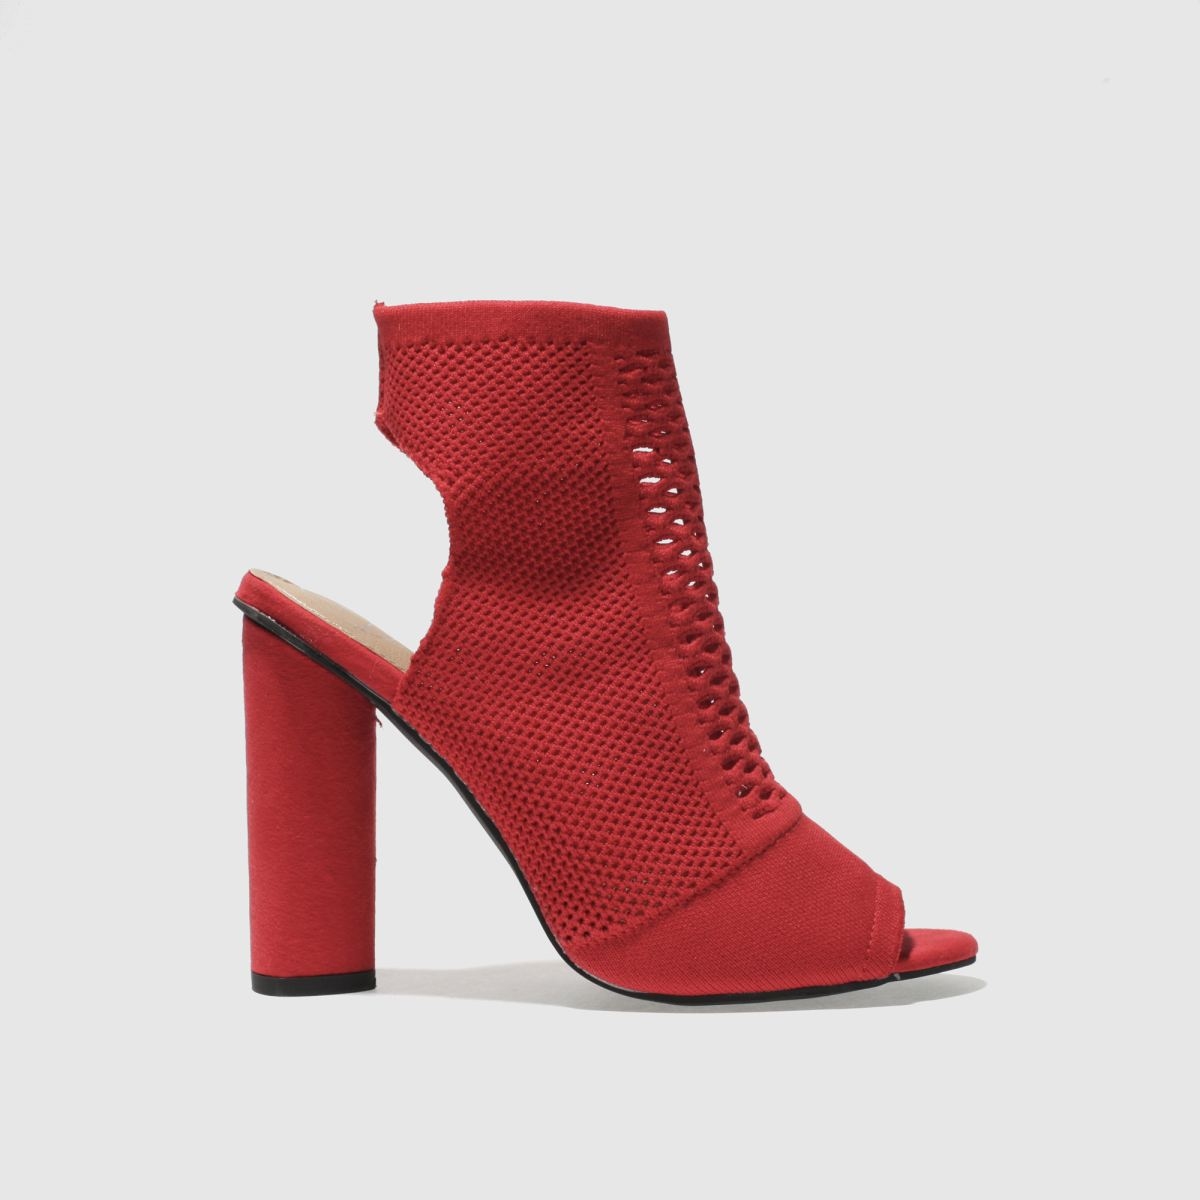 missguided Missguided Red Peep Toe Knitted Boots